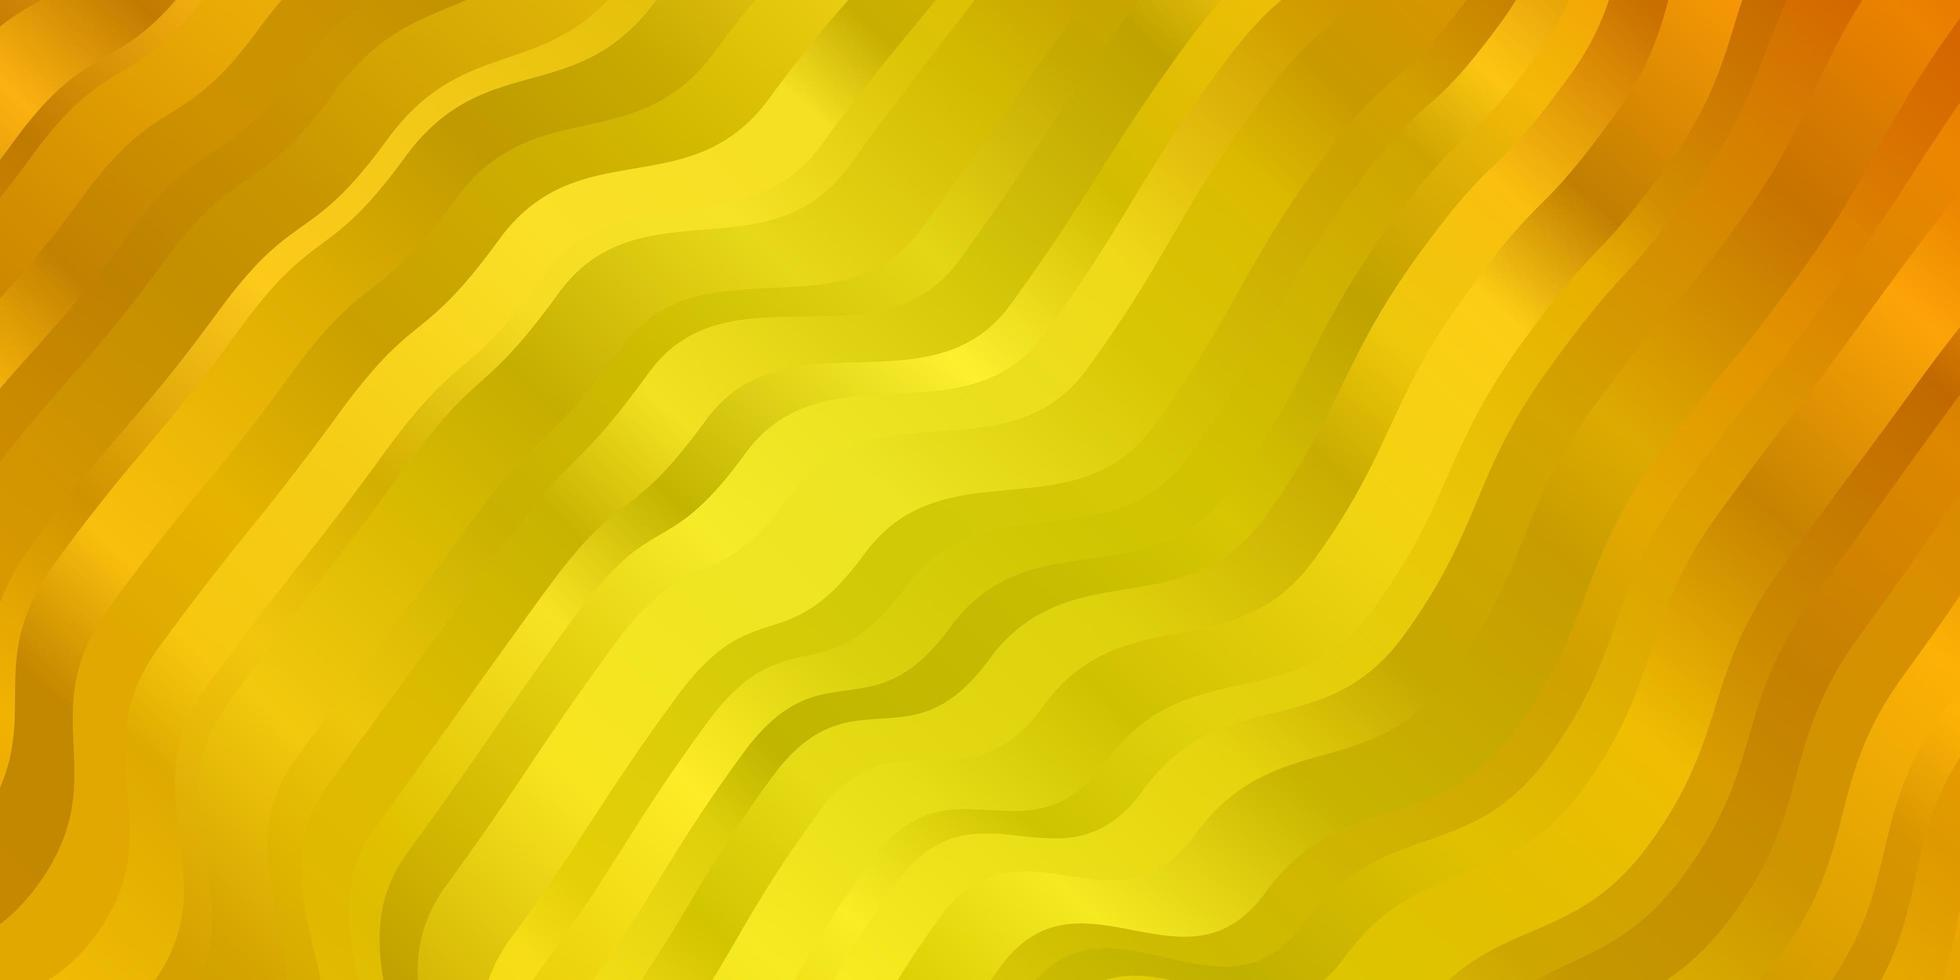 Yellow background with bent lines. vector